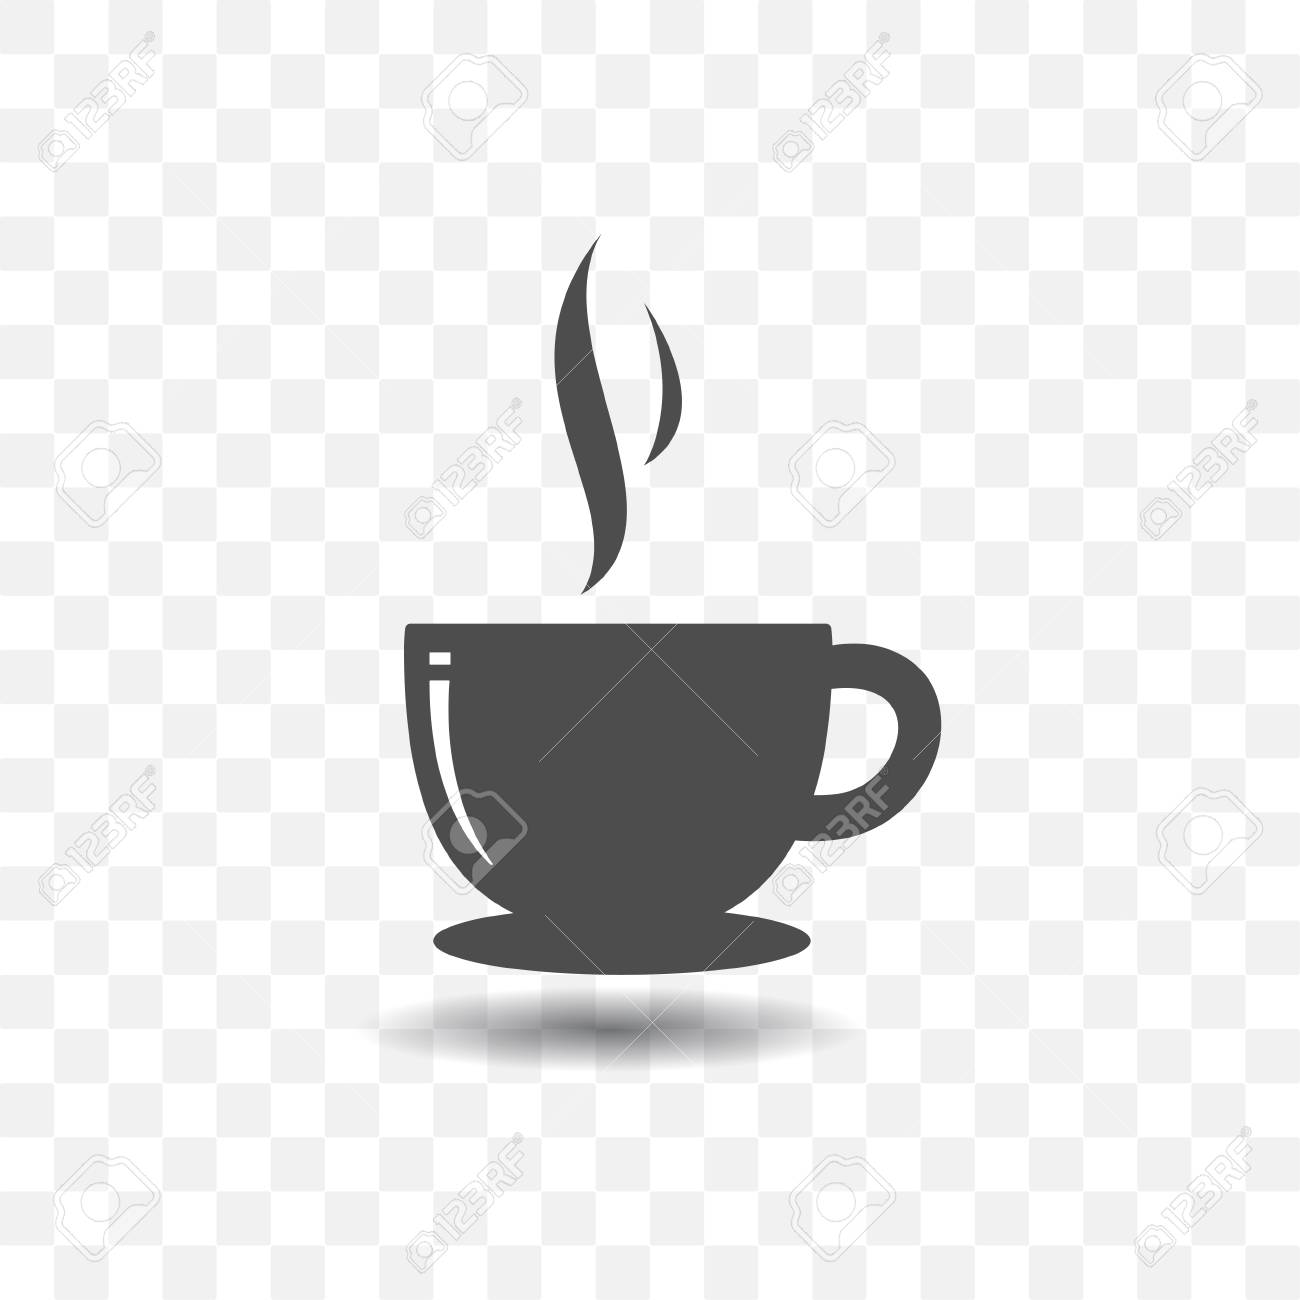 Coffee cup icon simple vector with shadow on transparent background..